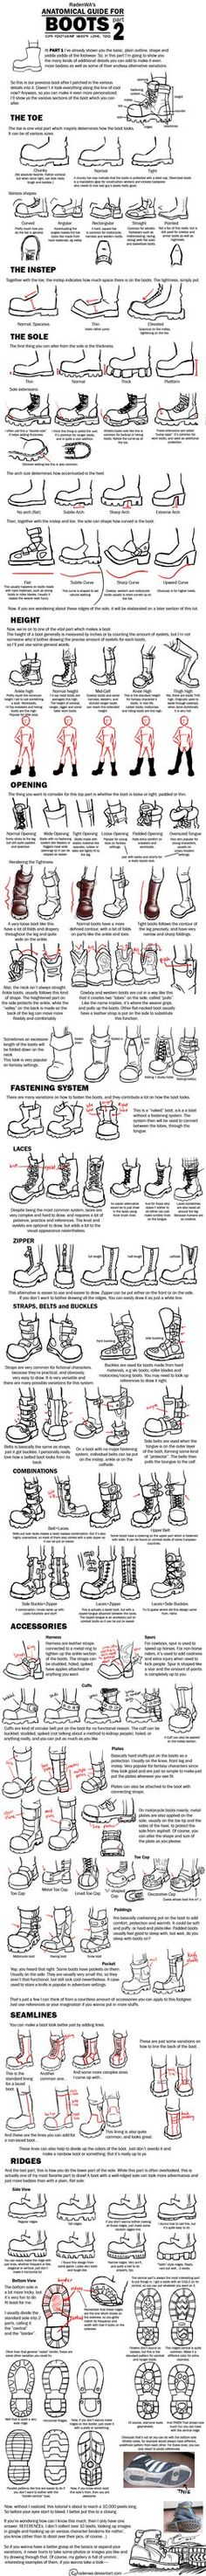 RadenWA's Anatomical Guide to Boots